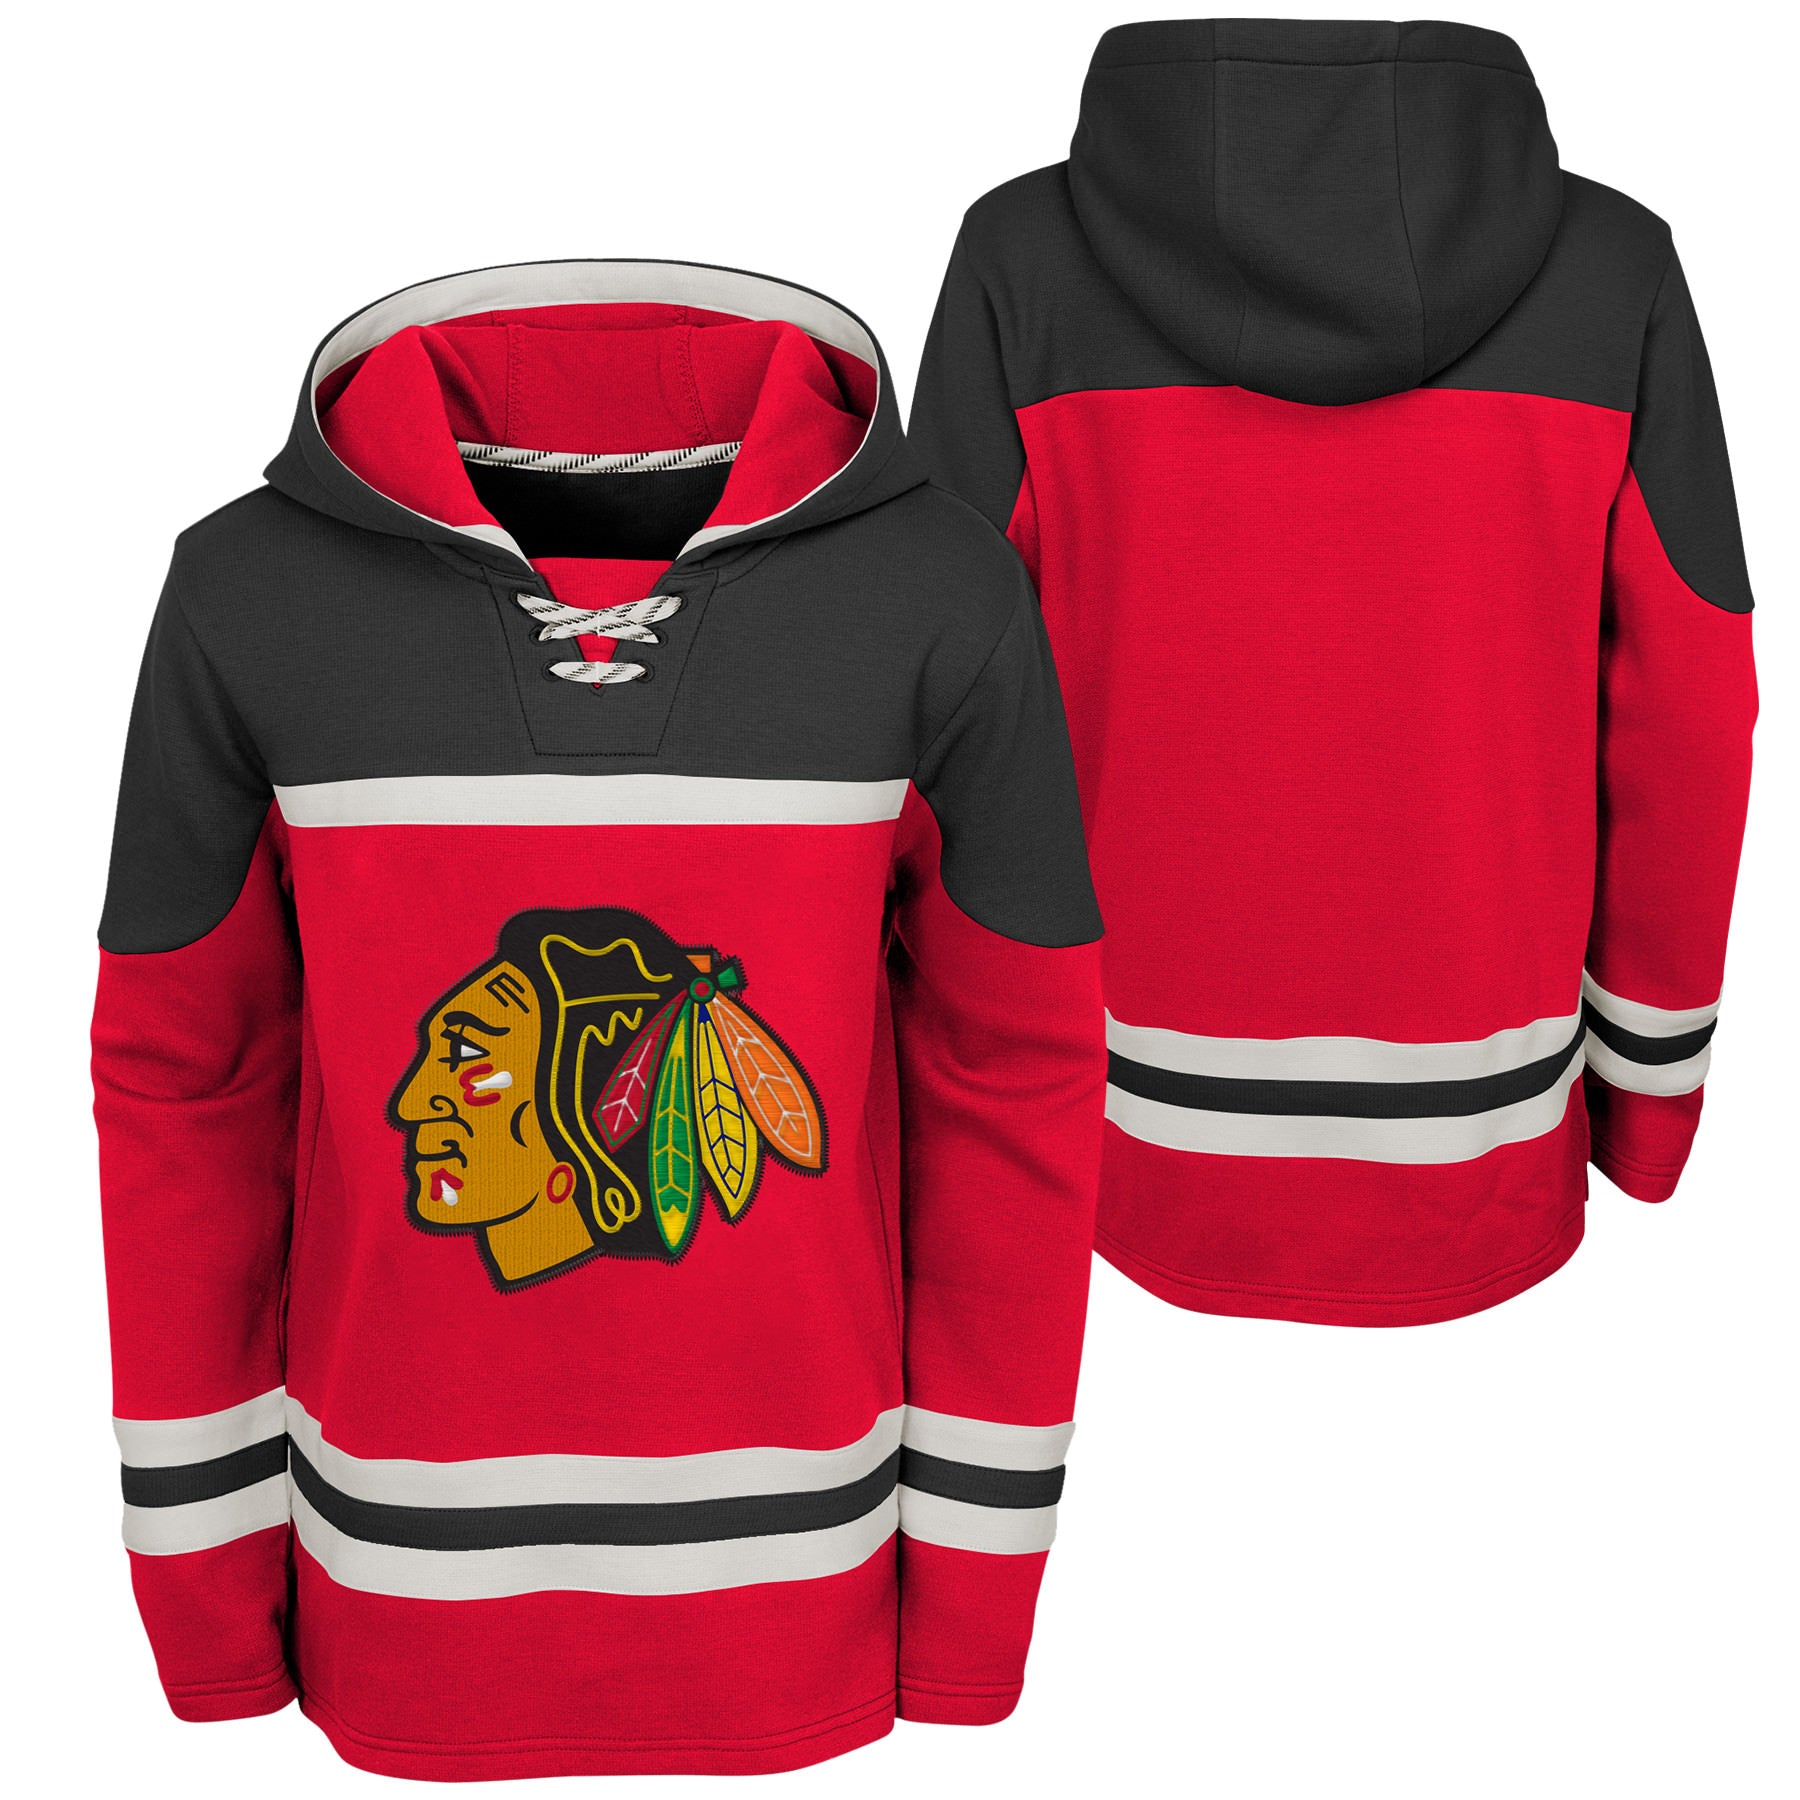 promo code a1048 672a3 Youth Chicago Blackhawks NHL Asset Hockey Hoodie